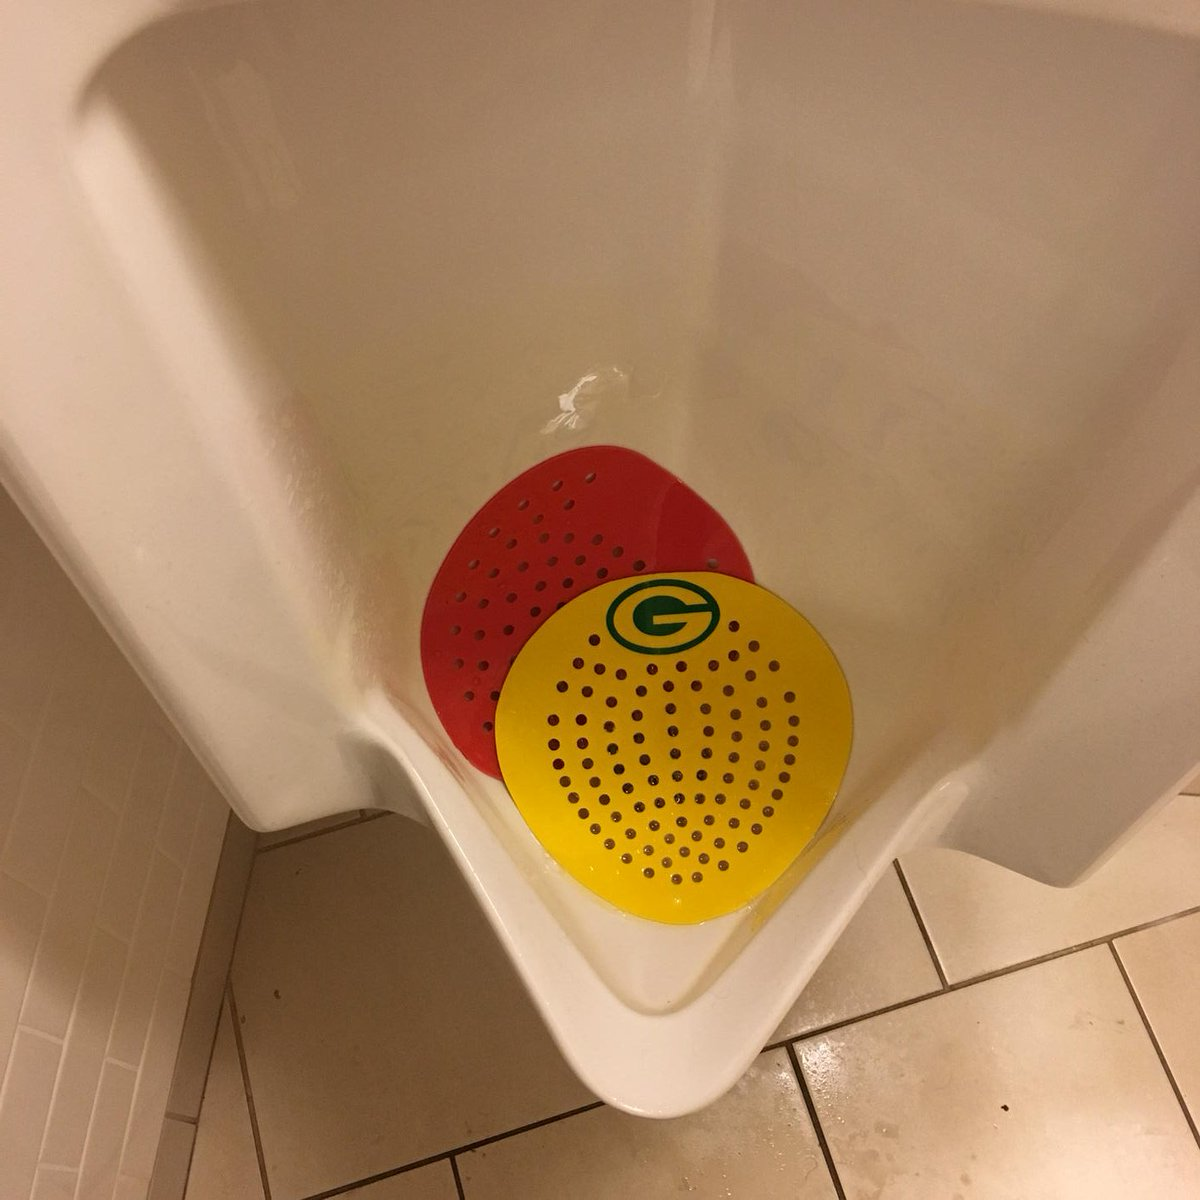 Someone added this to a urinal at Auditorium Theatre : https://t.co/x3qRvTyefv